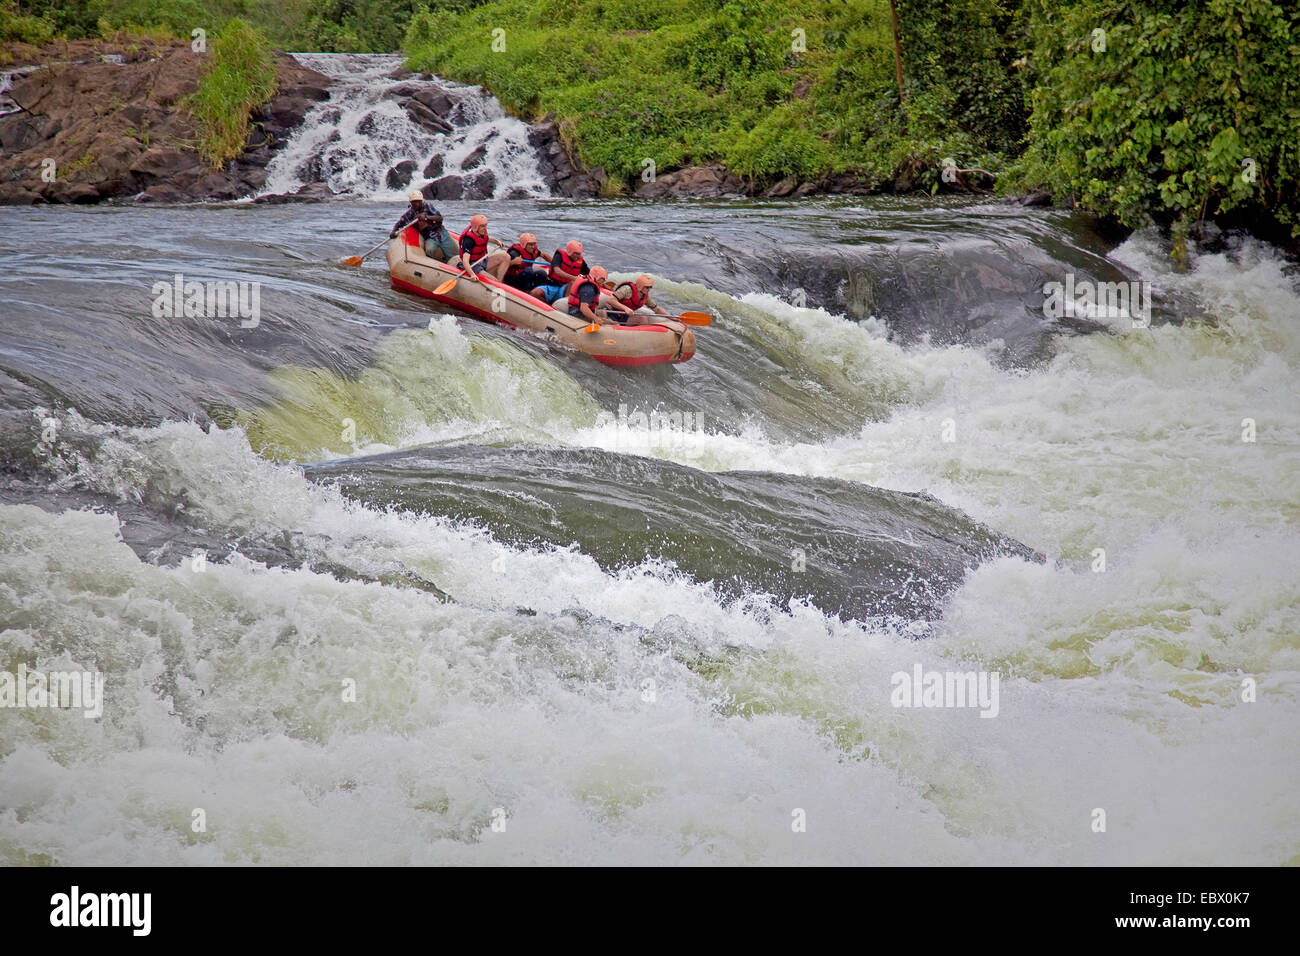 tourists with a local guide are rafting down the Bujagali waterfalls and are about to reach a wild rapid, Uganda, - Stock Image